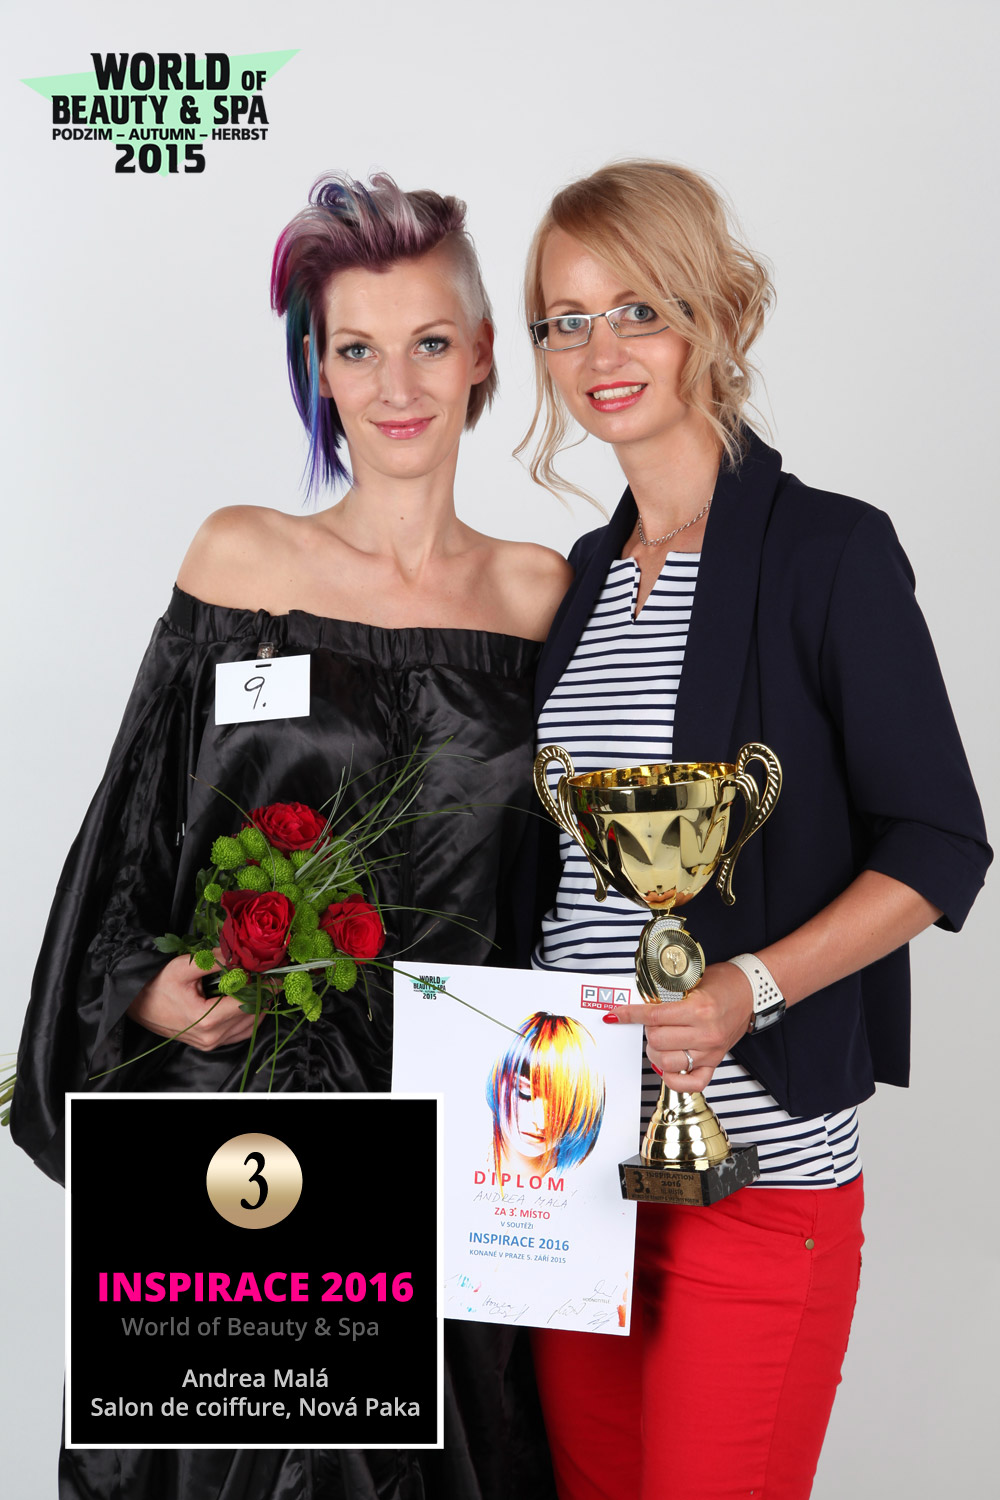 World of Beauty & Spa – Inspiration 2016: 3rd place Andrea Mala, Salon de coiffure, Nova Paka